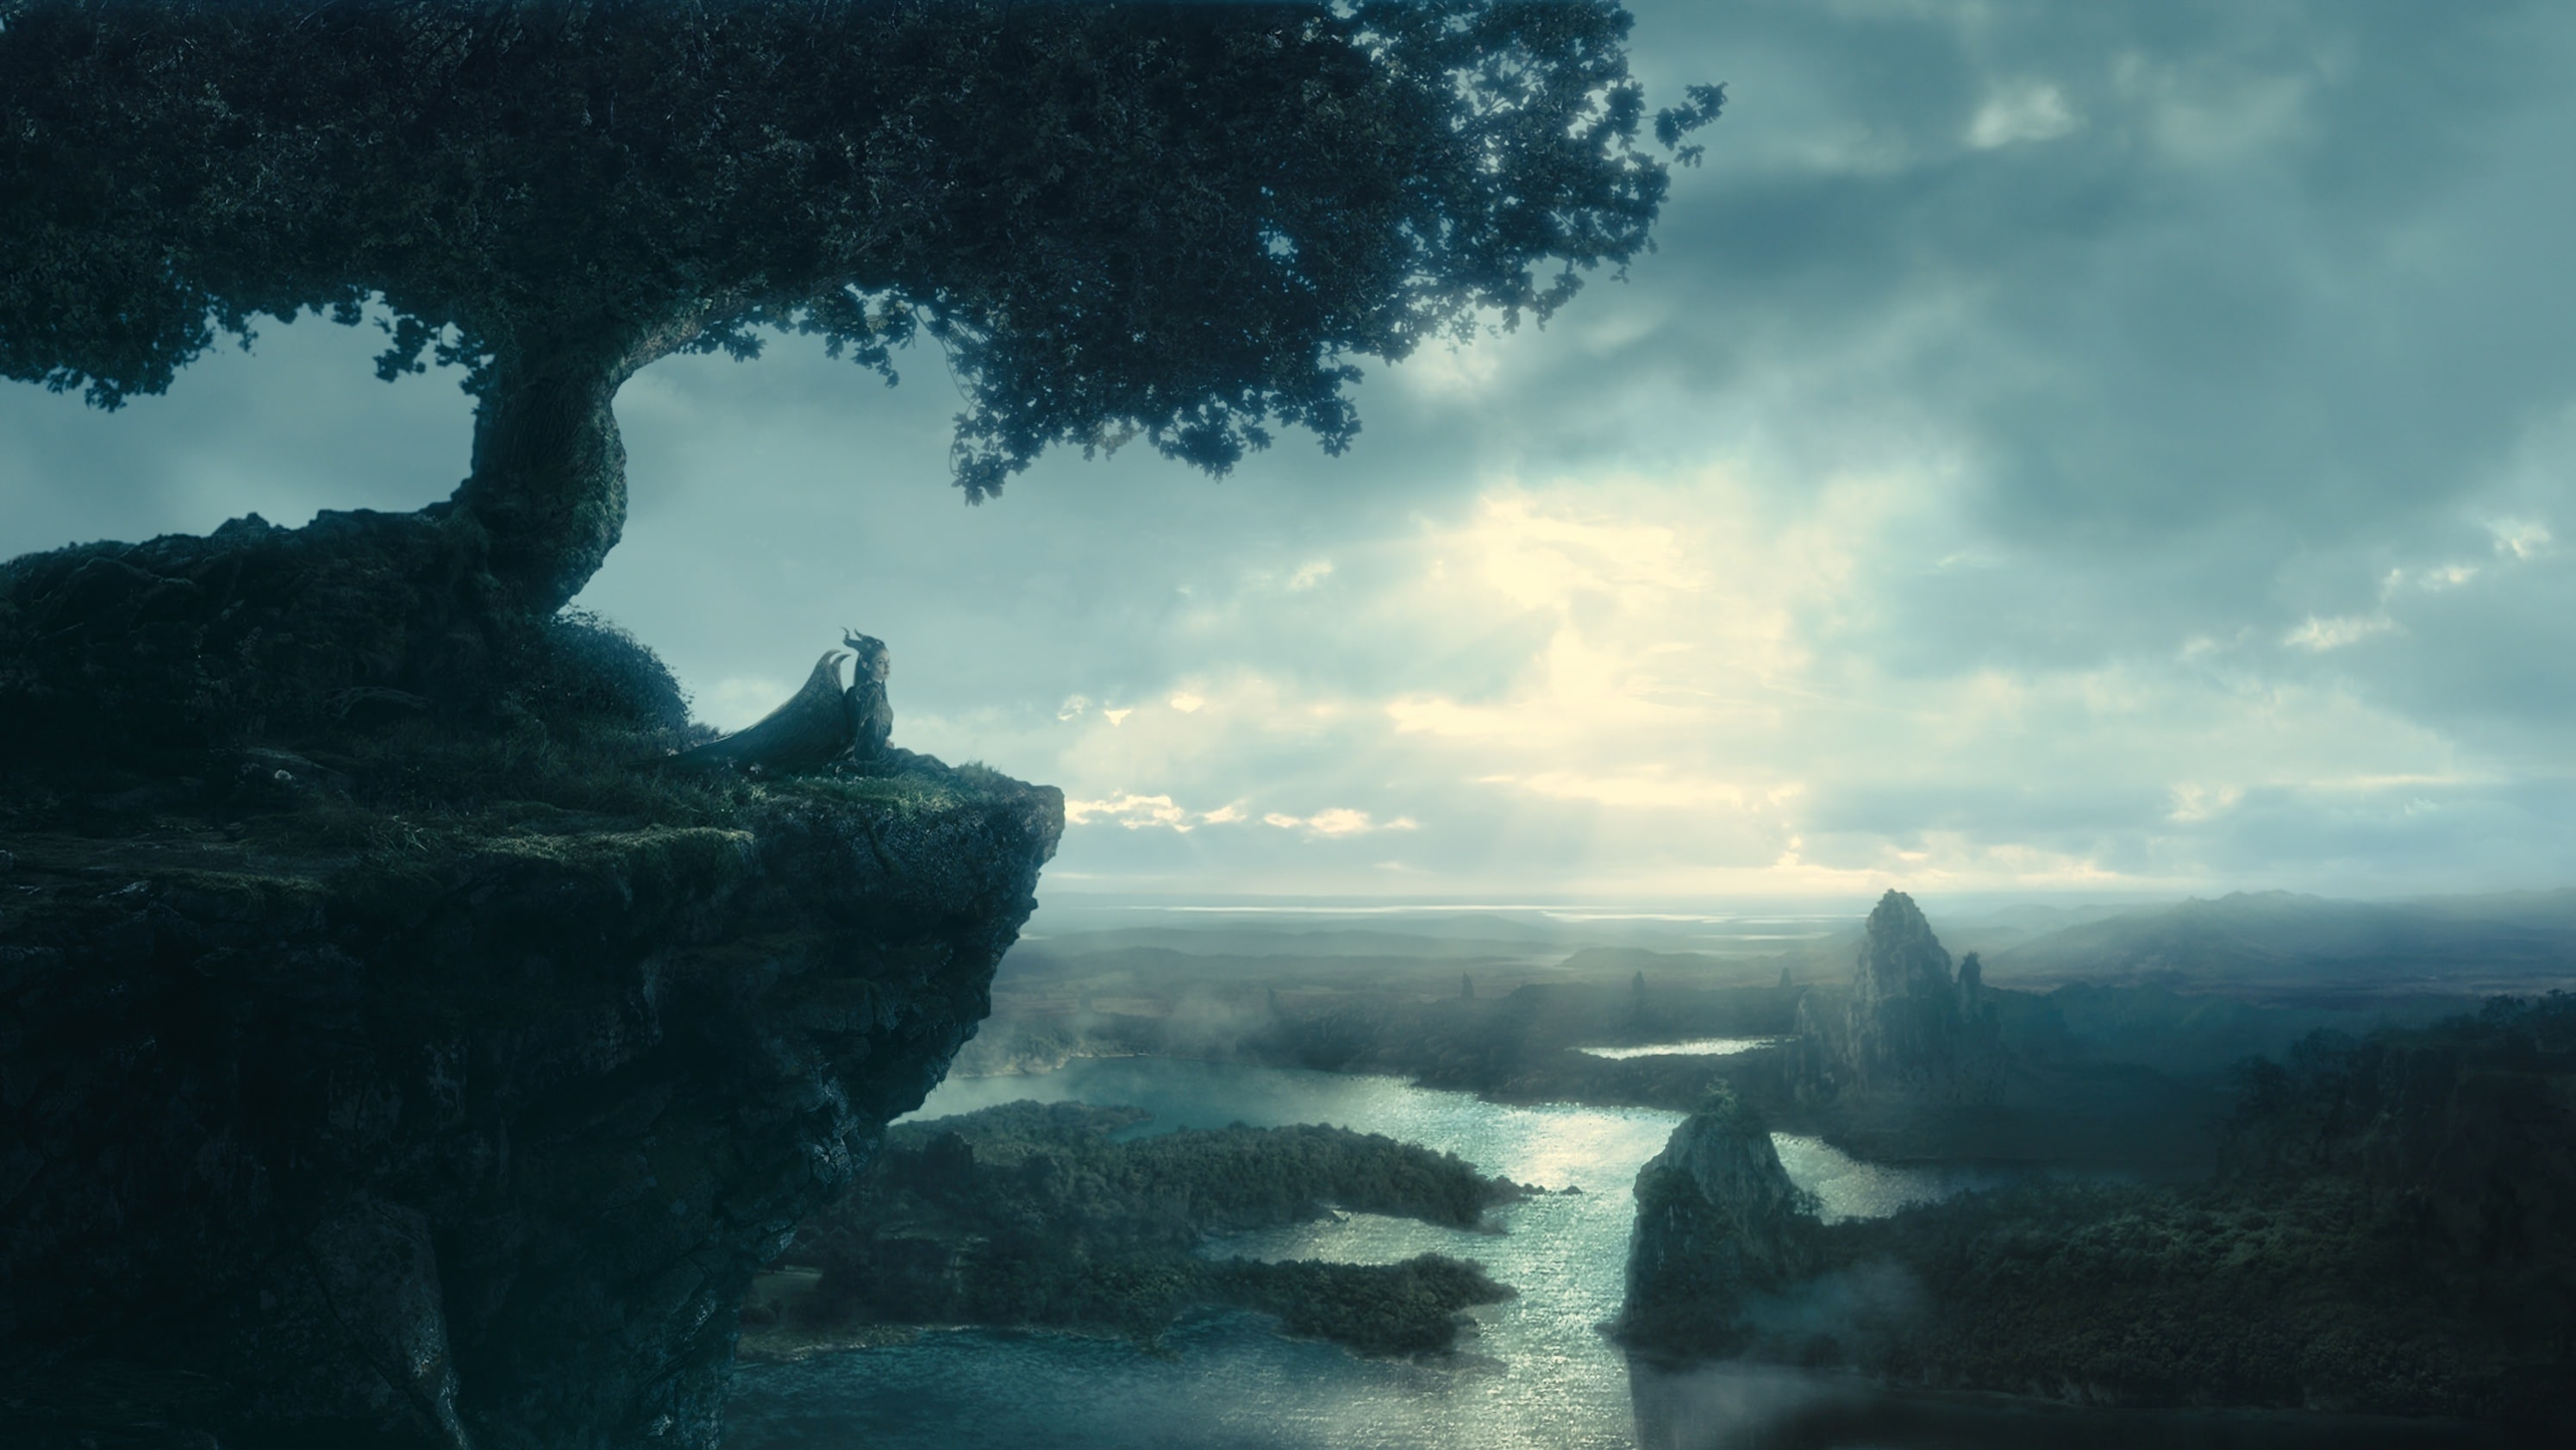 """Angelina Jolie as Maleficent sitting under a tree overlooking the river or bay in the movie """"Maleficent"""""""